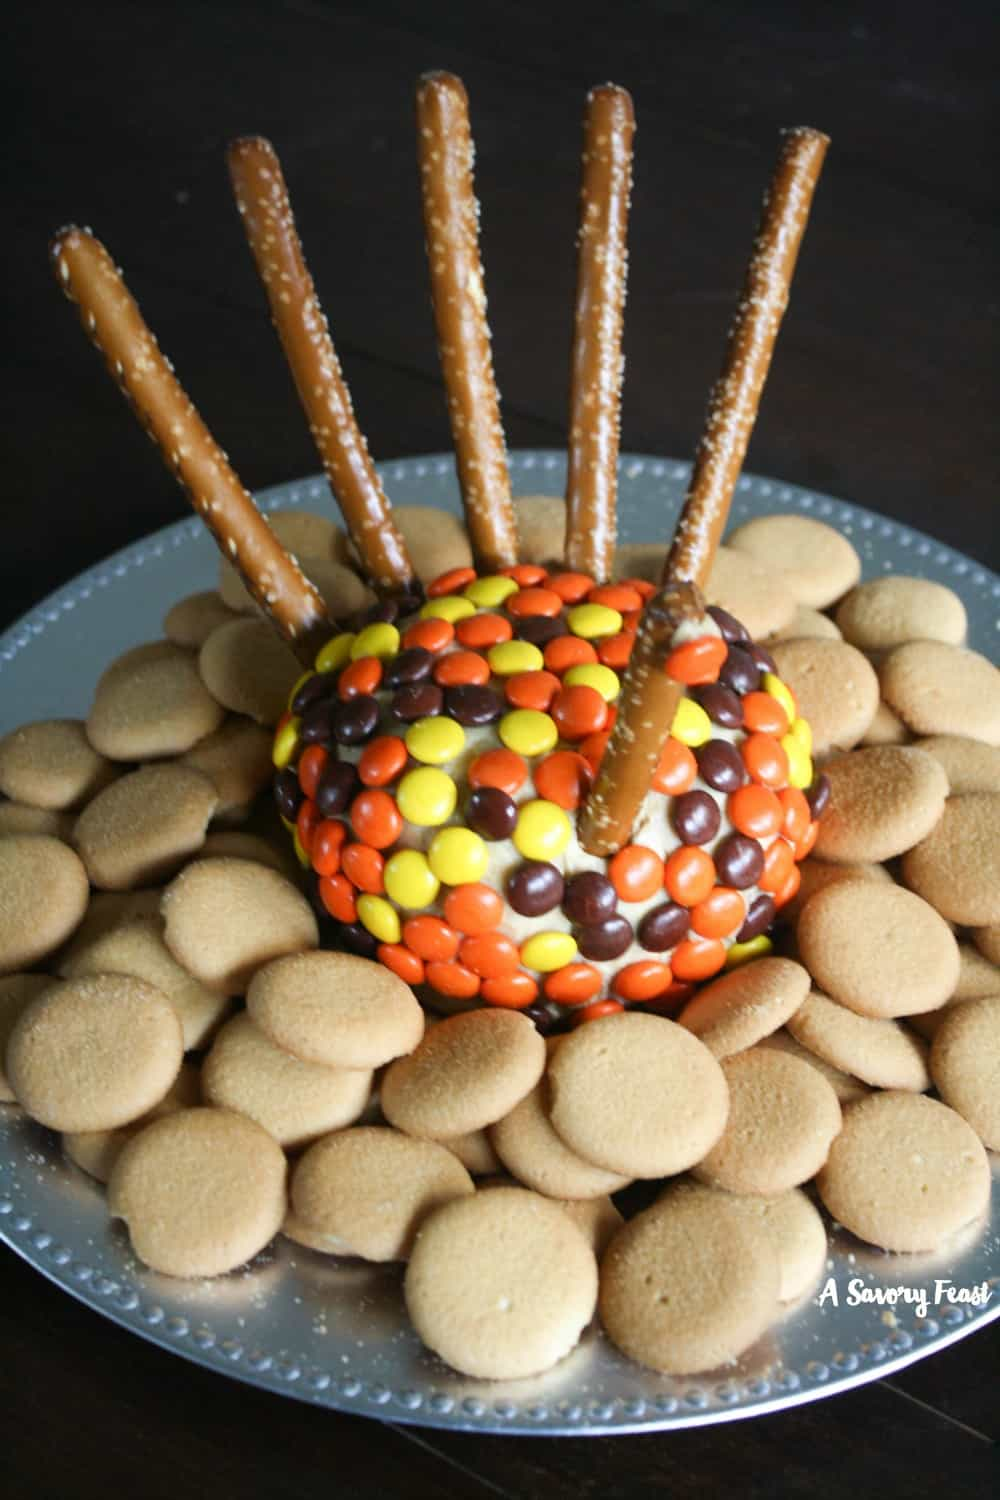 Thanksgiving Turkey Peanut Butter Cheeseball from A Savory Feast